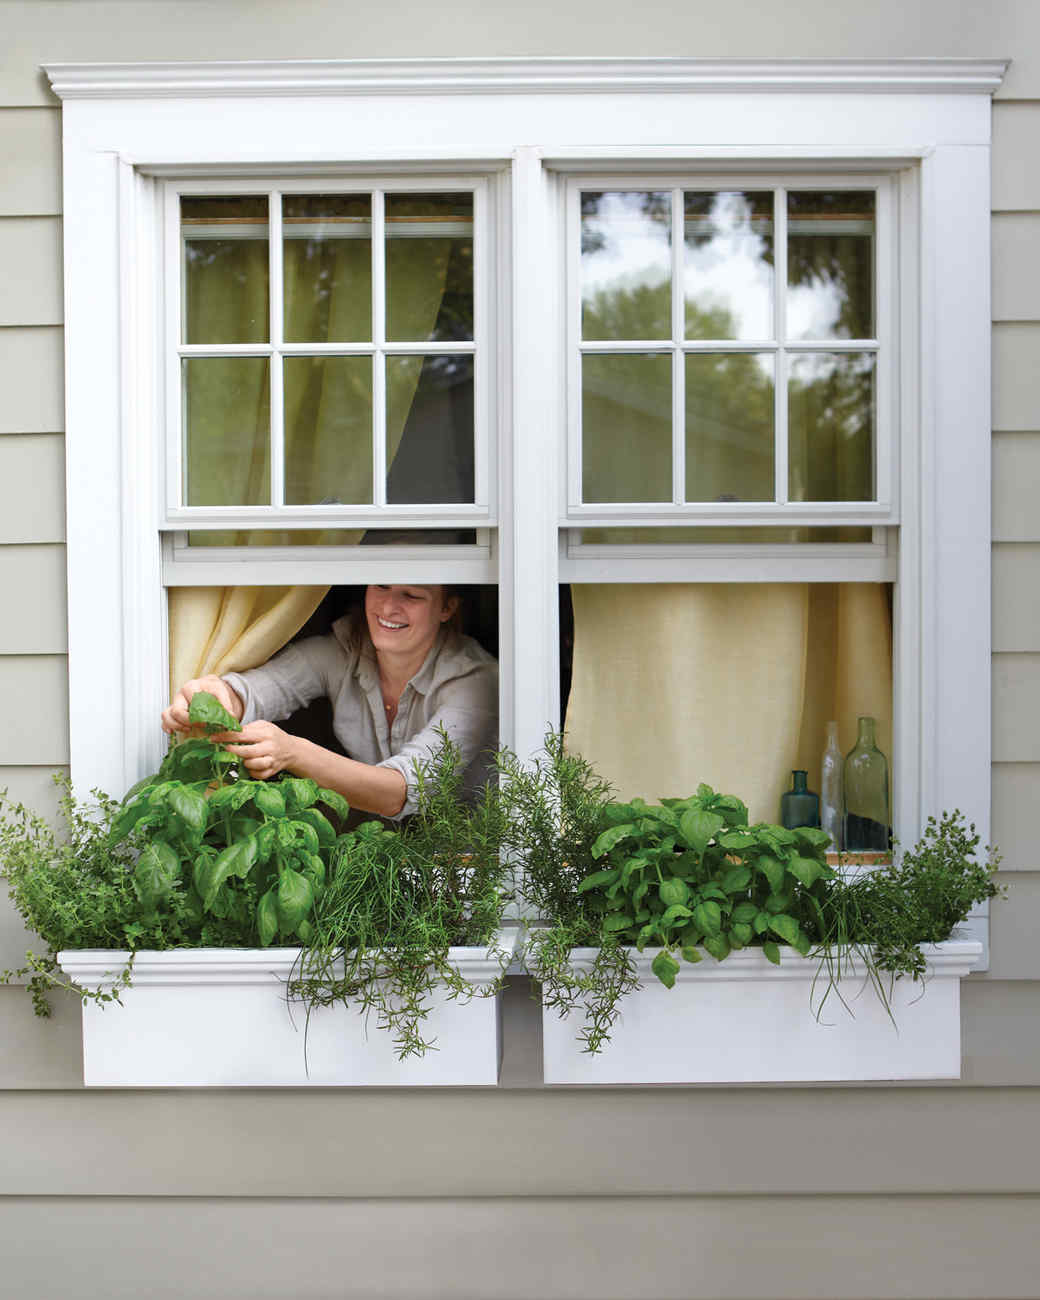 Kitchen Window Herb Planter: Small-Space Garden Ideas